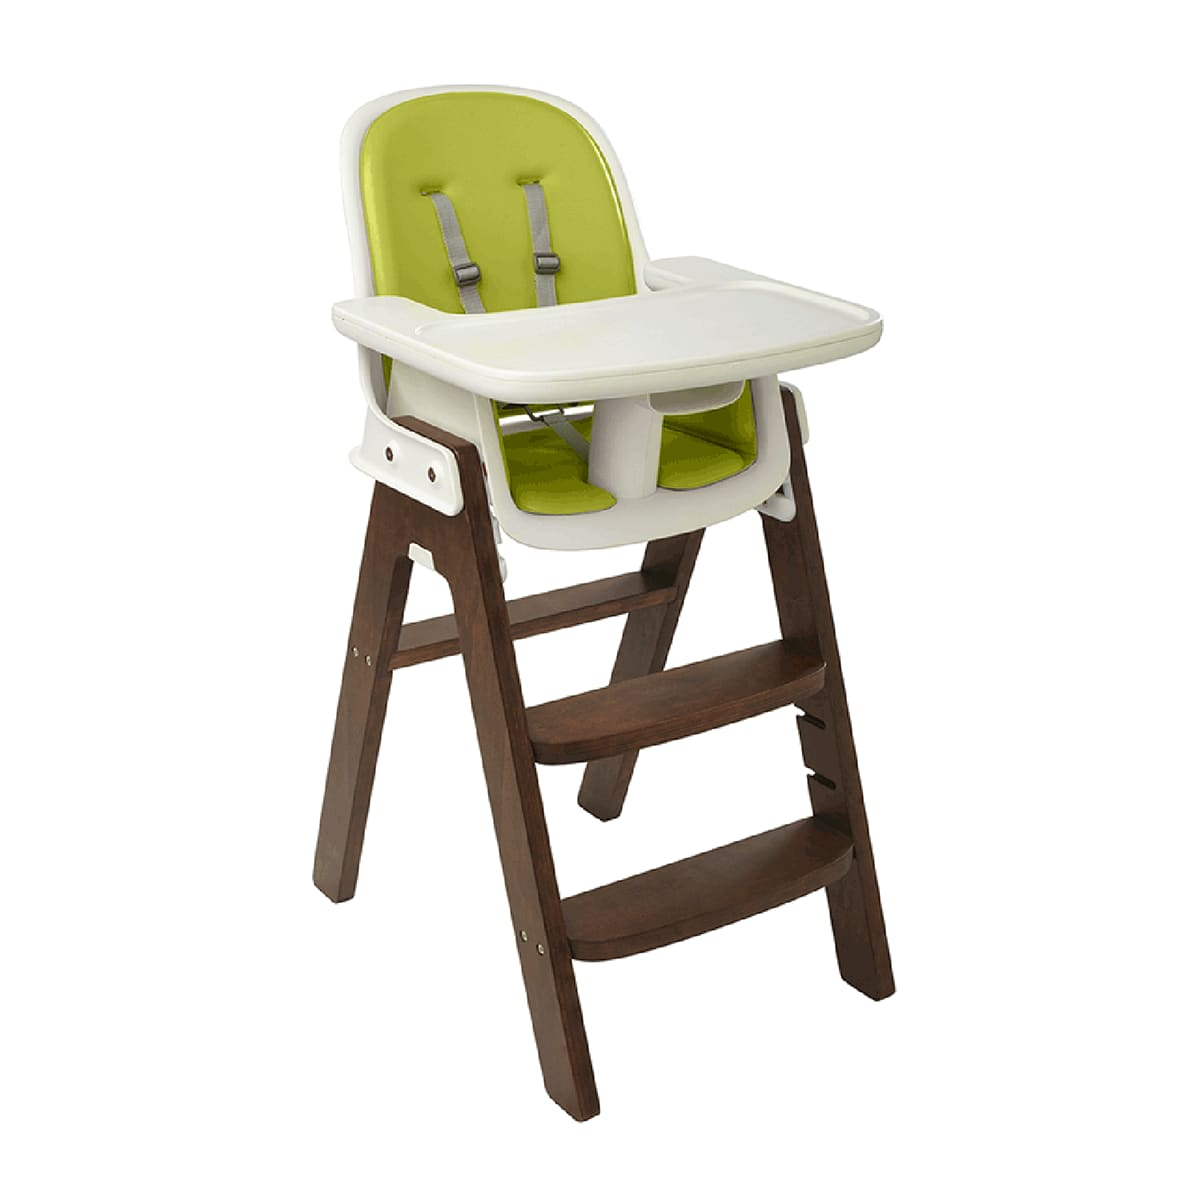 The Most Stylish and Easy-to-Clean High Chairs: gallery image 4